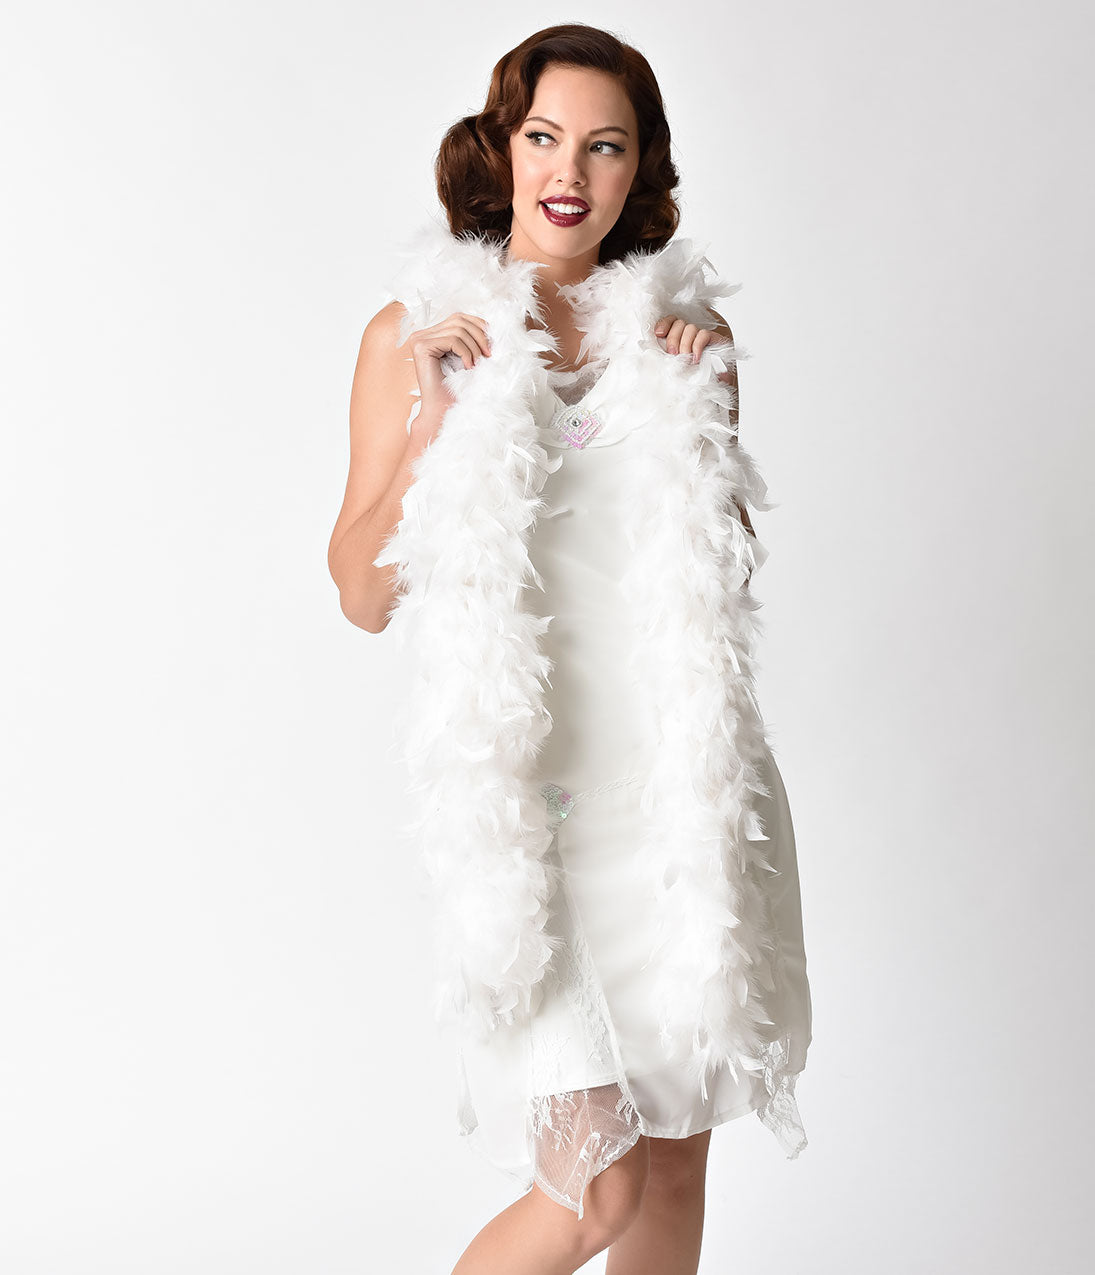 Vintage Scarf Styles -1920s to 1960s 1920S Inspired White Chandelle Feather Boa $14.00 AT vintagedancer.com